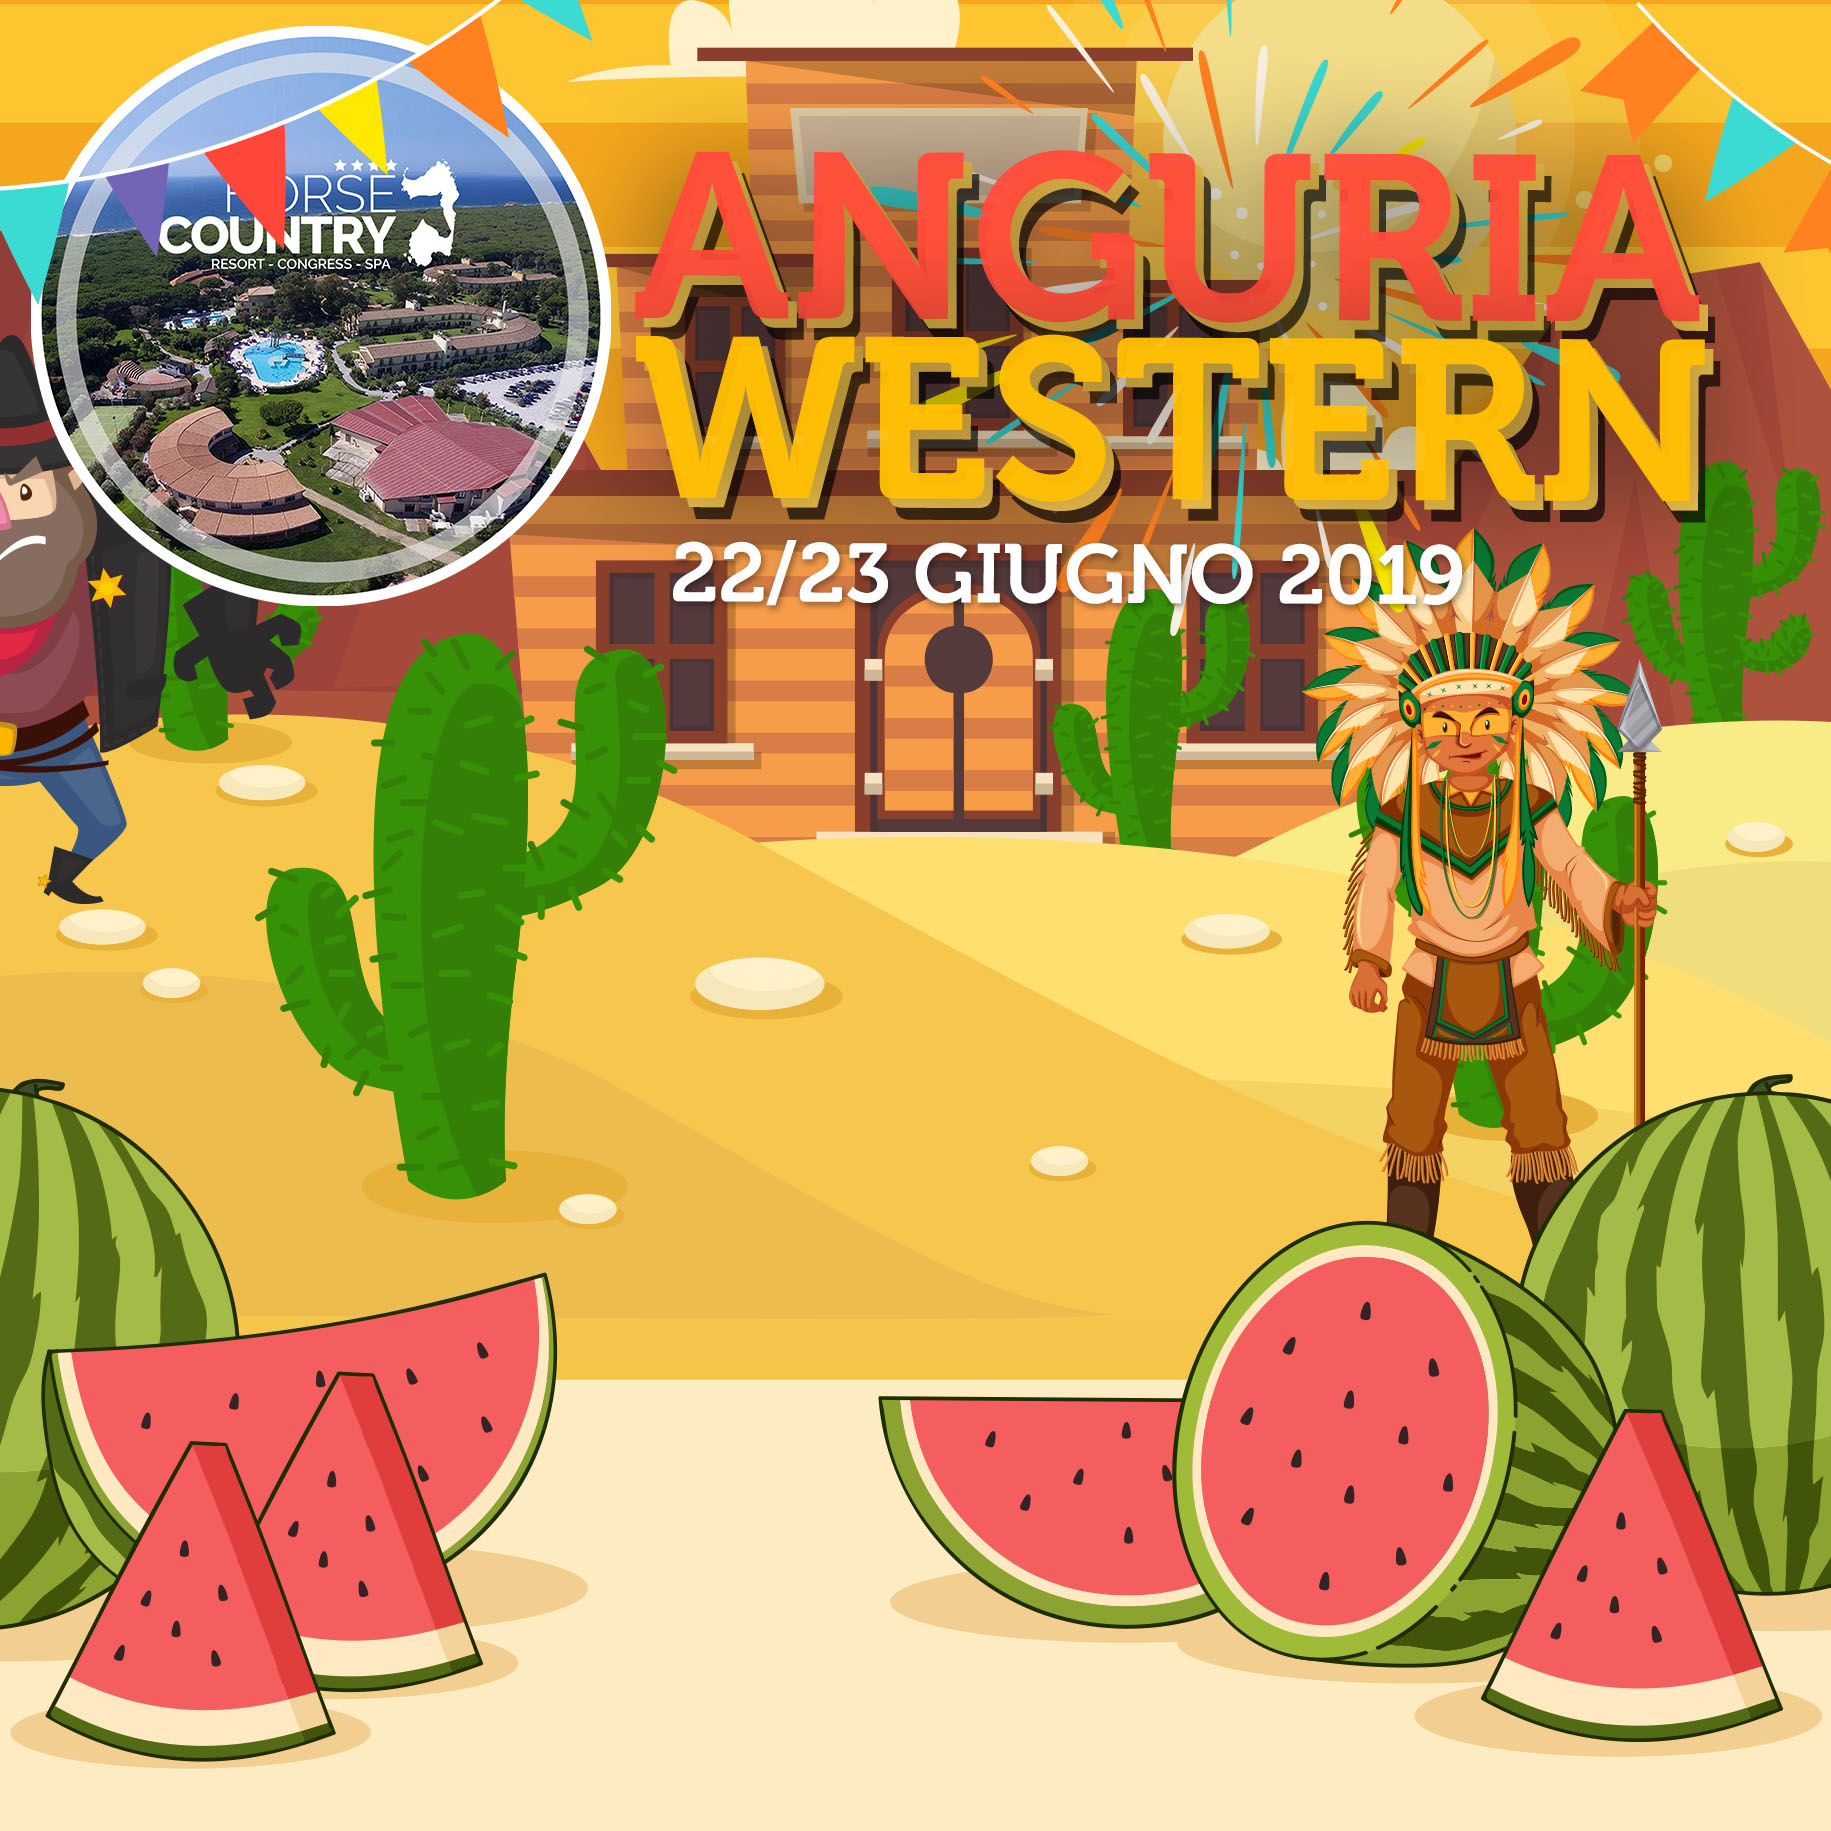 Weekend Anguria Western